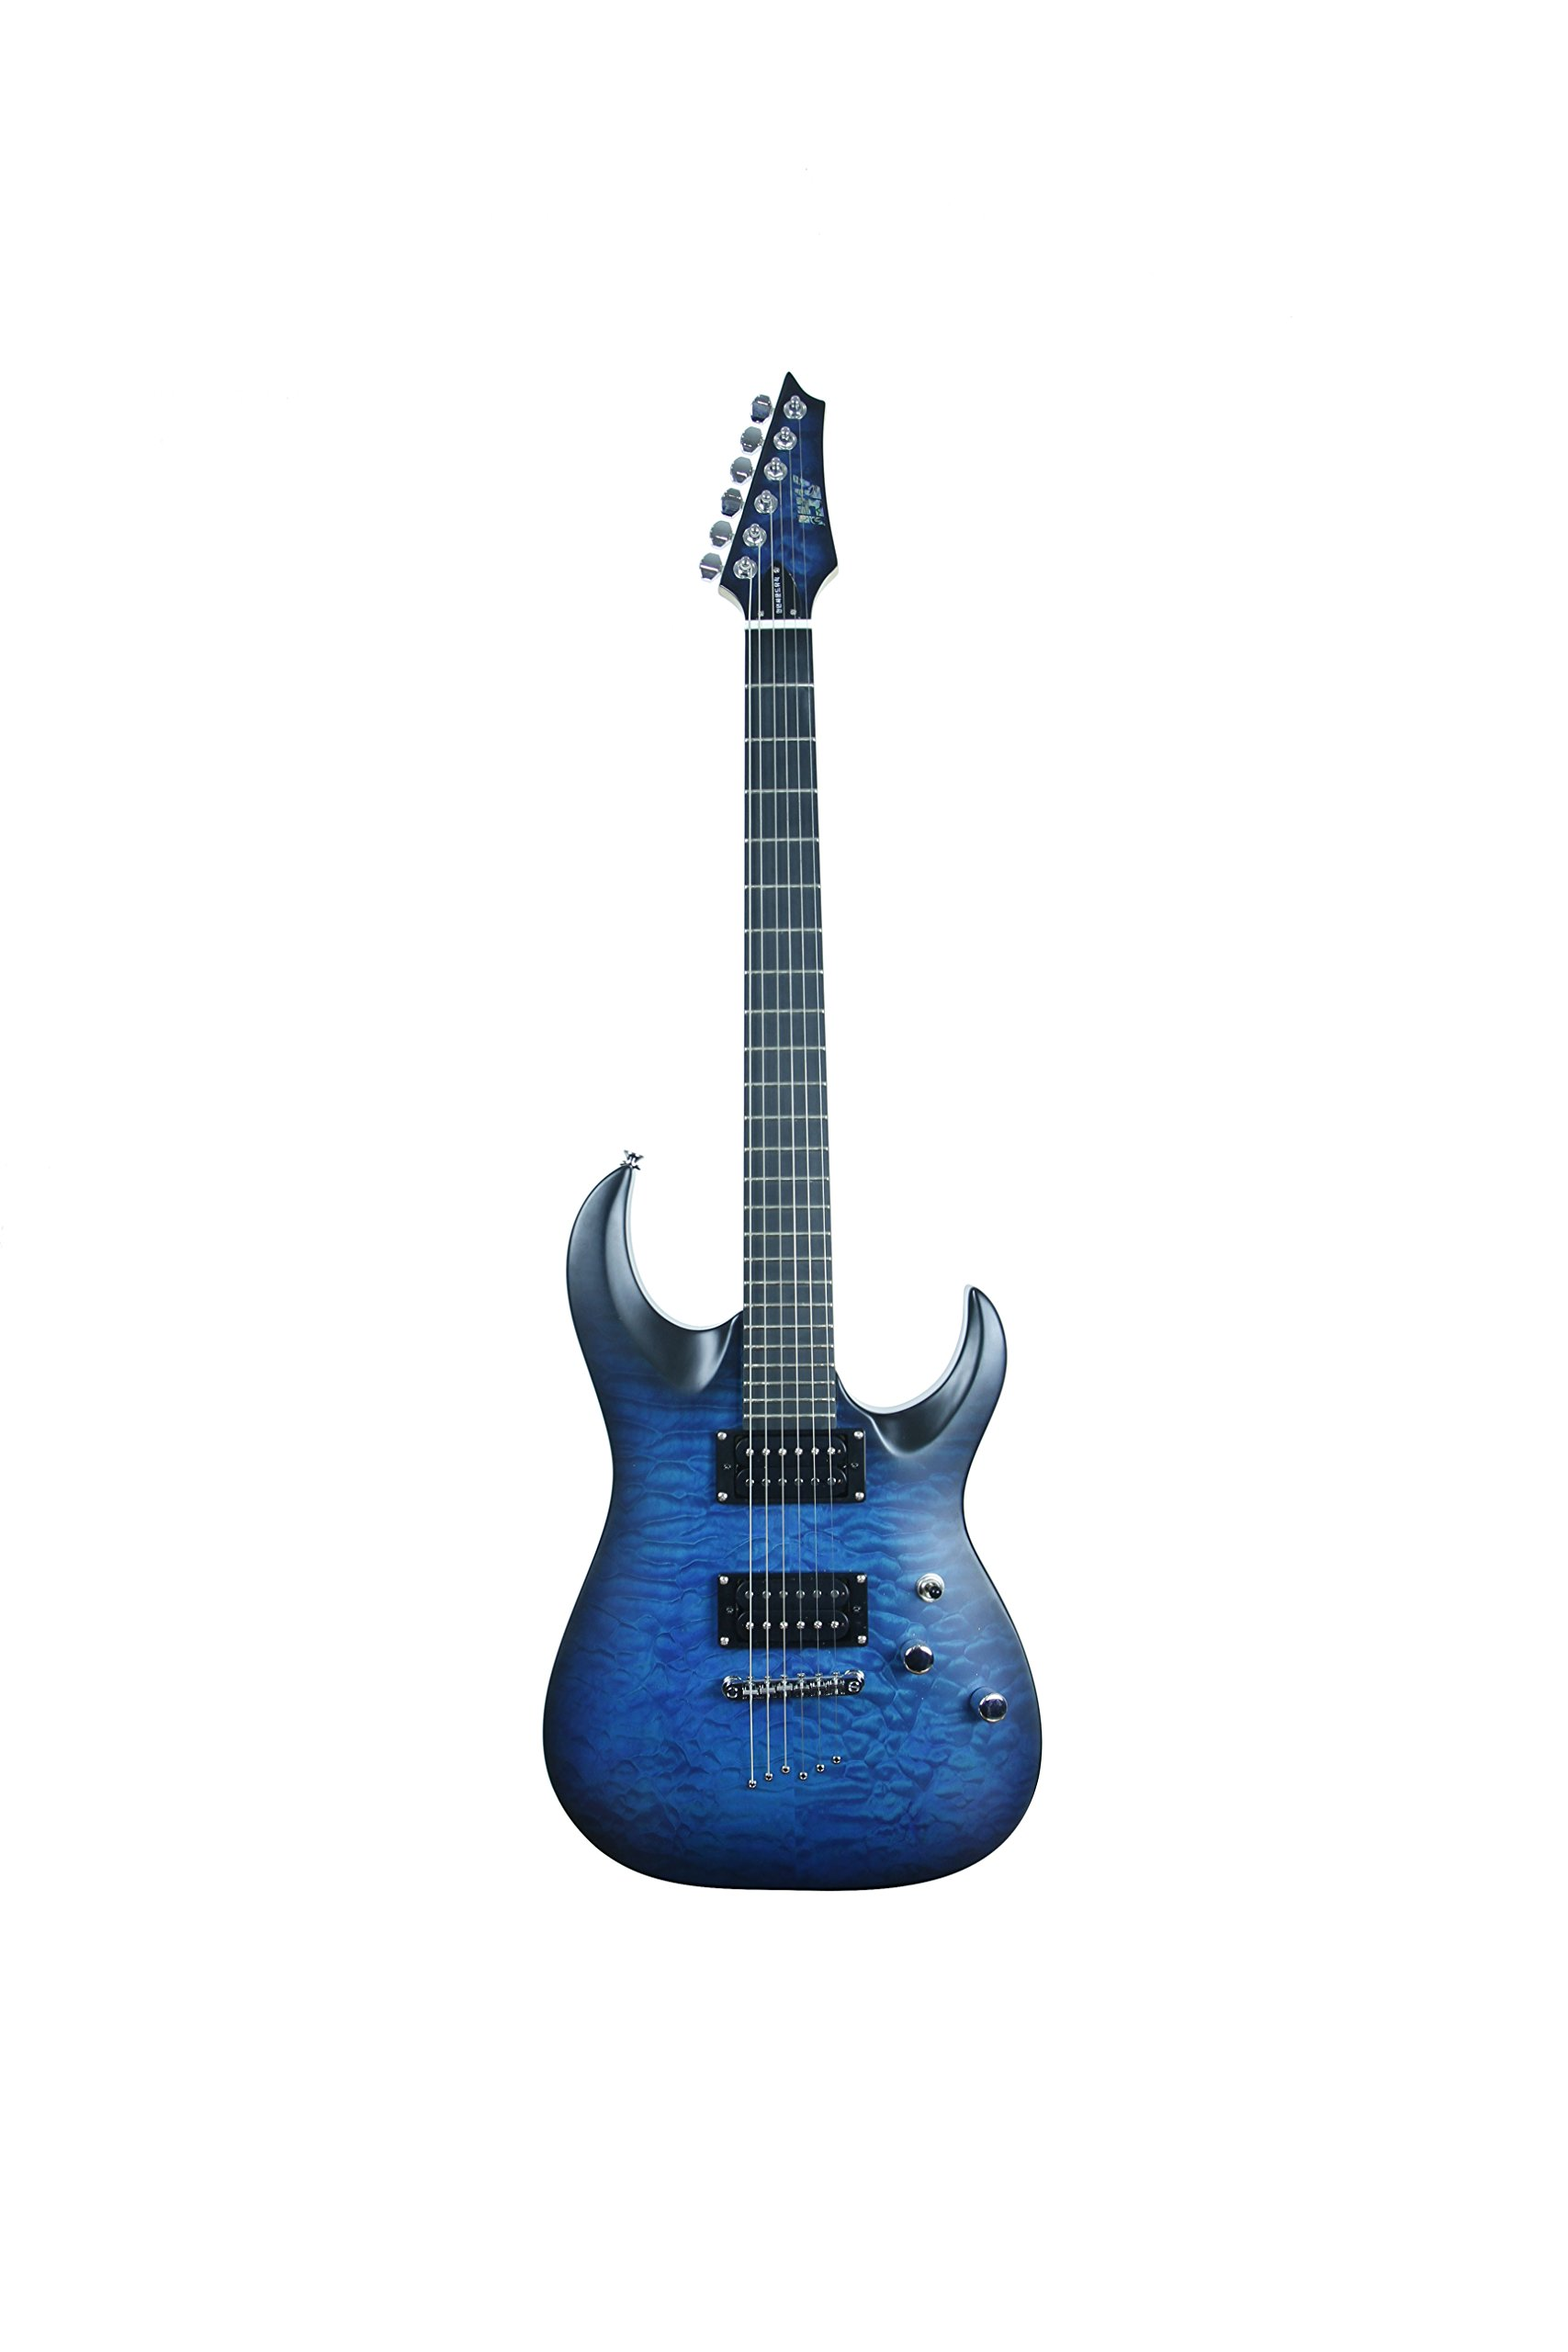 ivy IS-300 TBL Strat Solid-Body Electric Guitar, Trans Blue Burst by Unknown